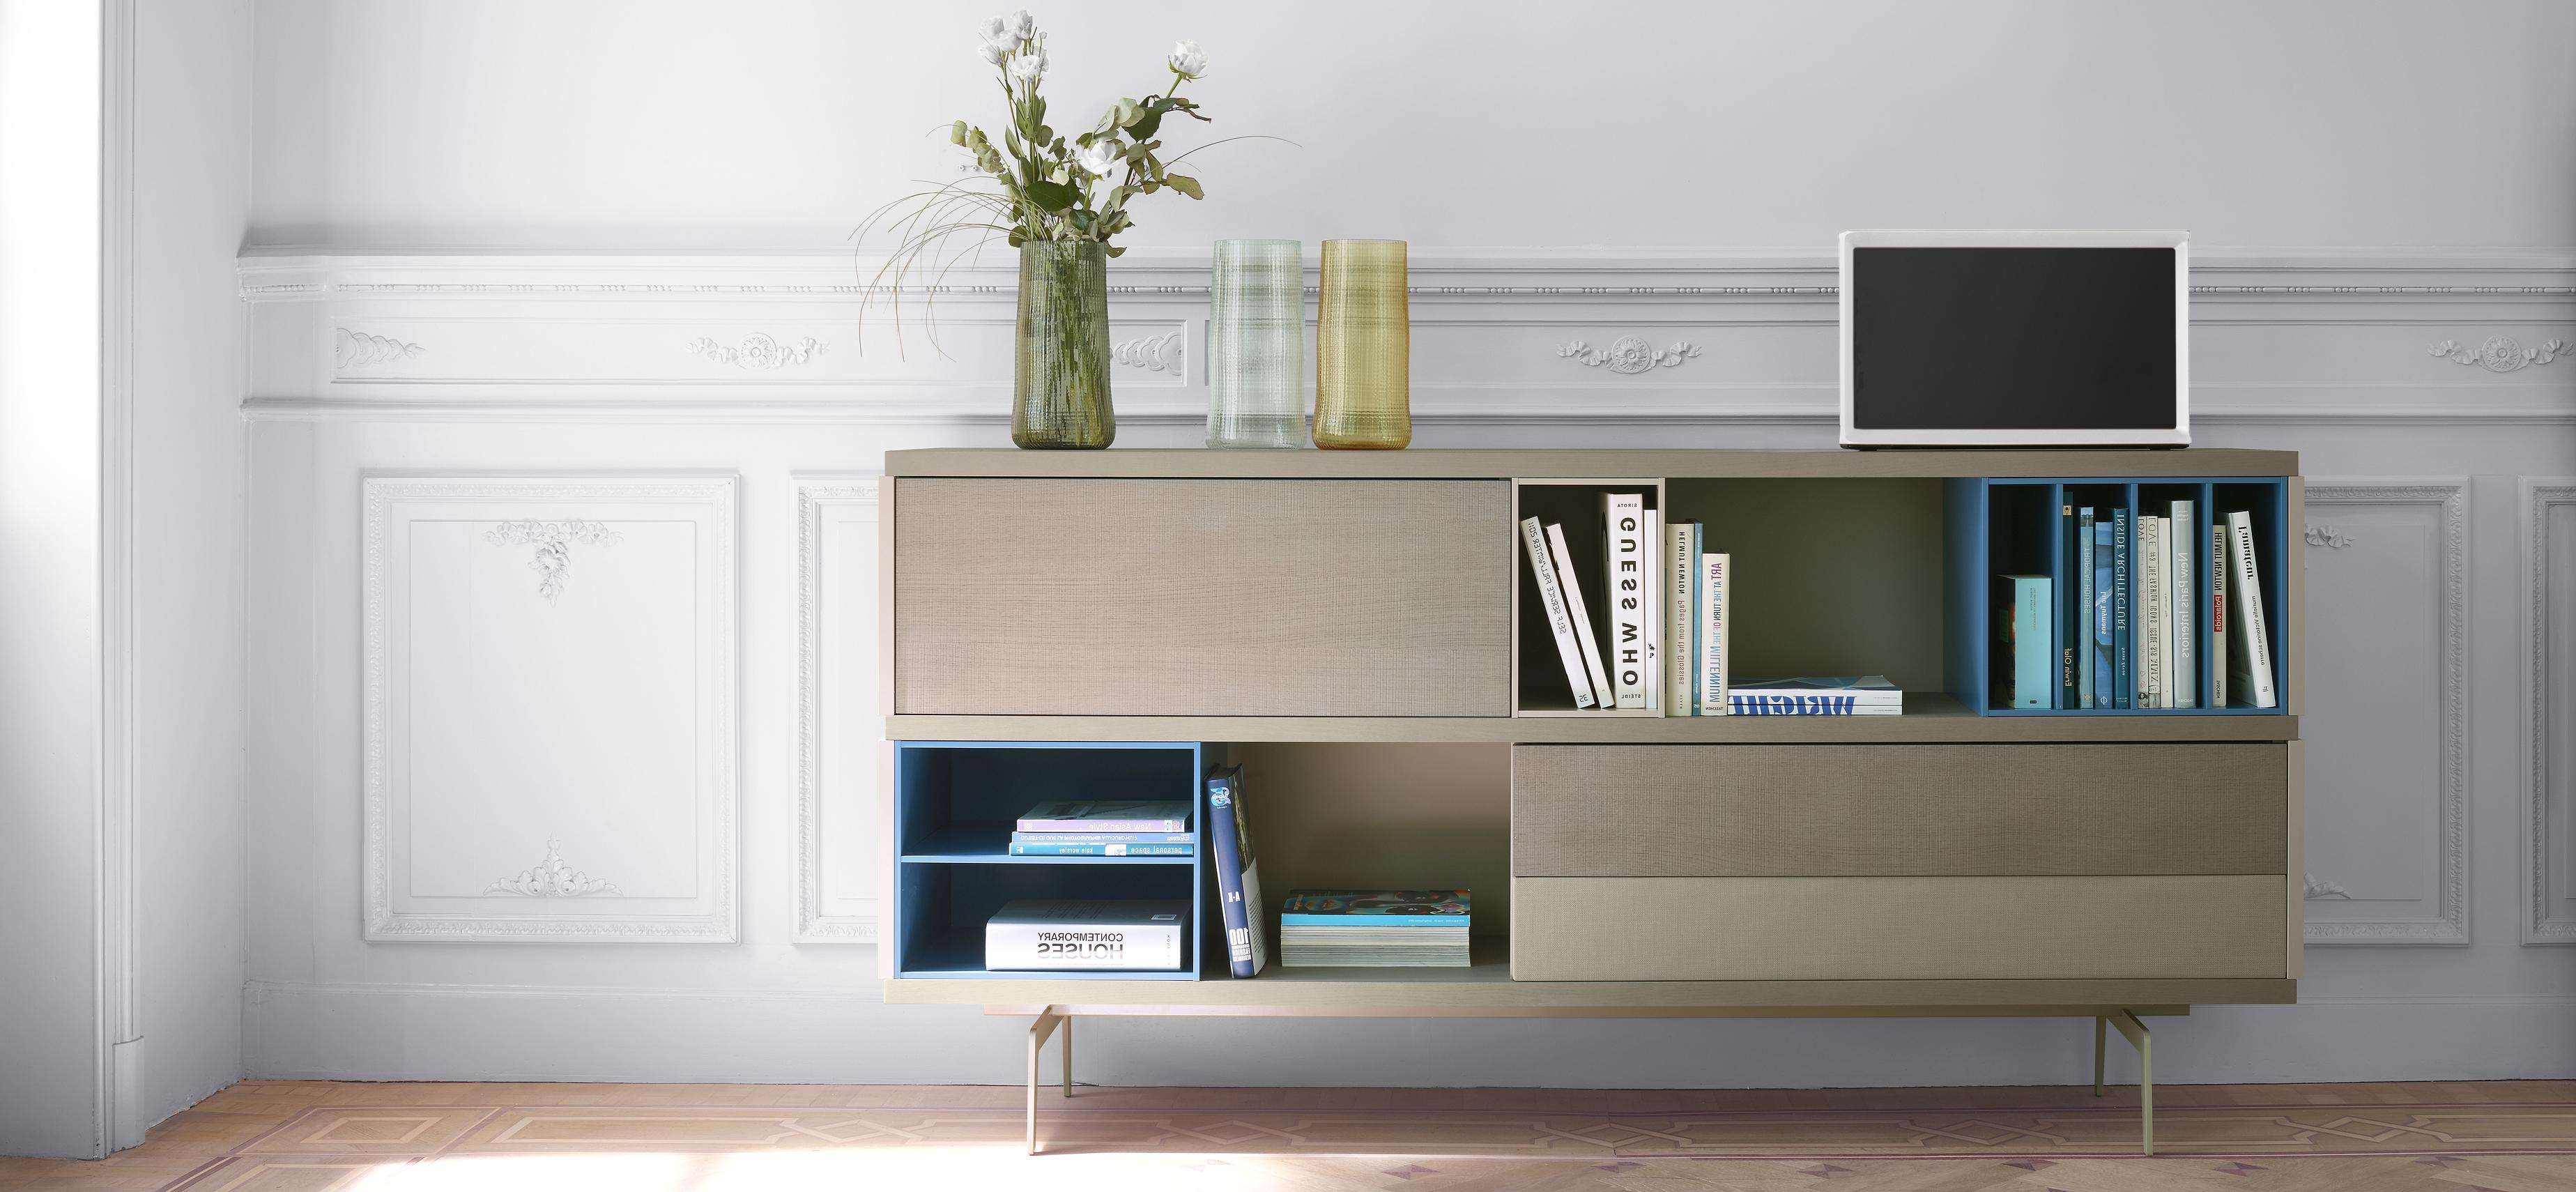 Mixte Living Room, Sideboards Designer : Mauro Lipparini | Ligne Roset Within Living Room Sideboards (View 11 of 20)